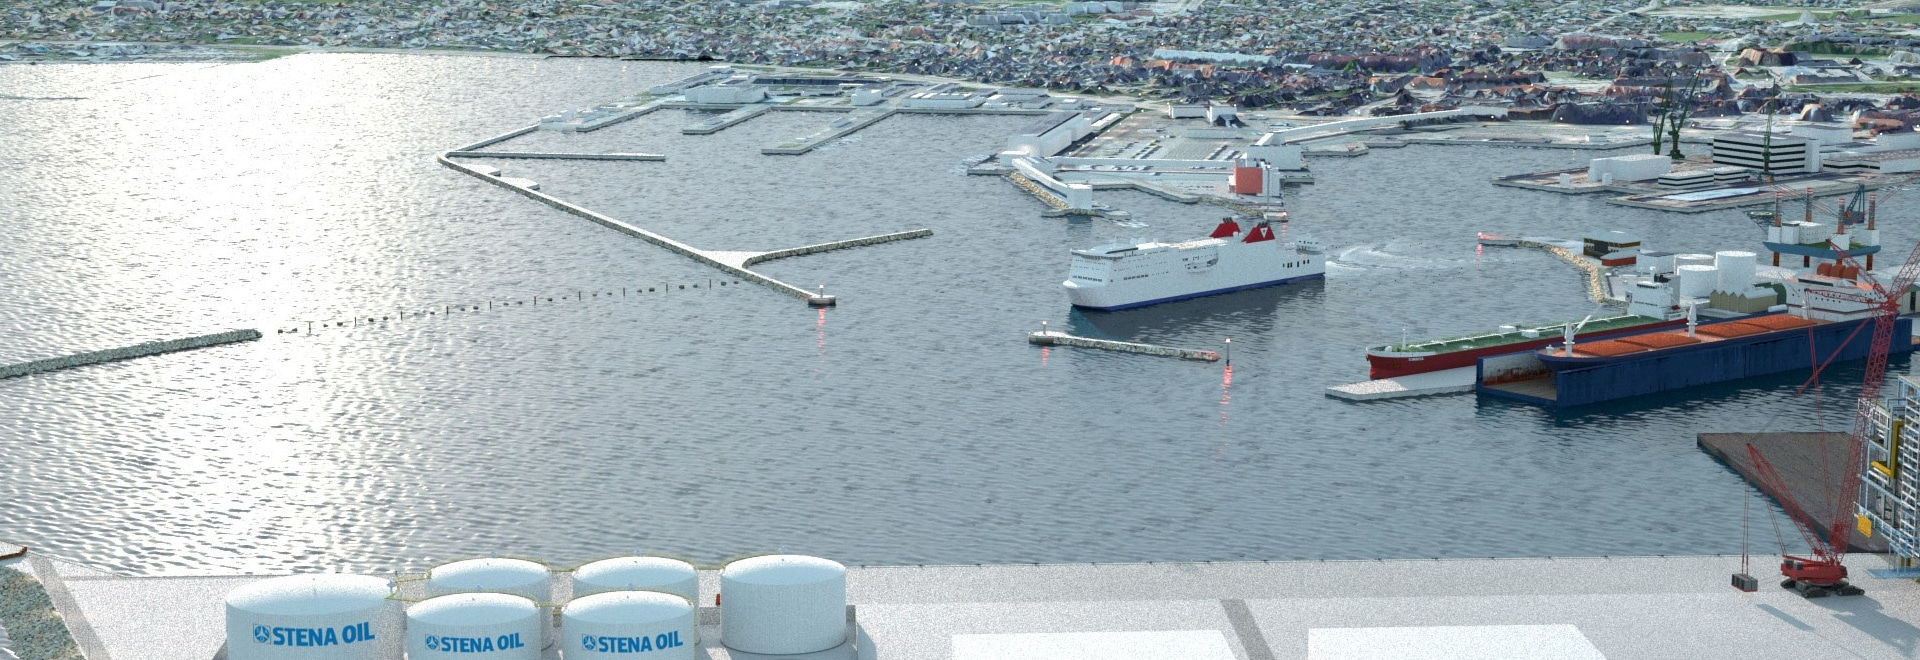 Stena Oil to Build 2020 Sulphur Cap Adapted Marine Fuel Terminal